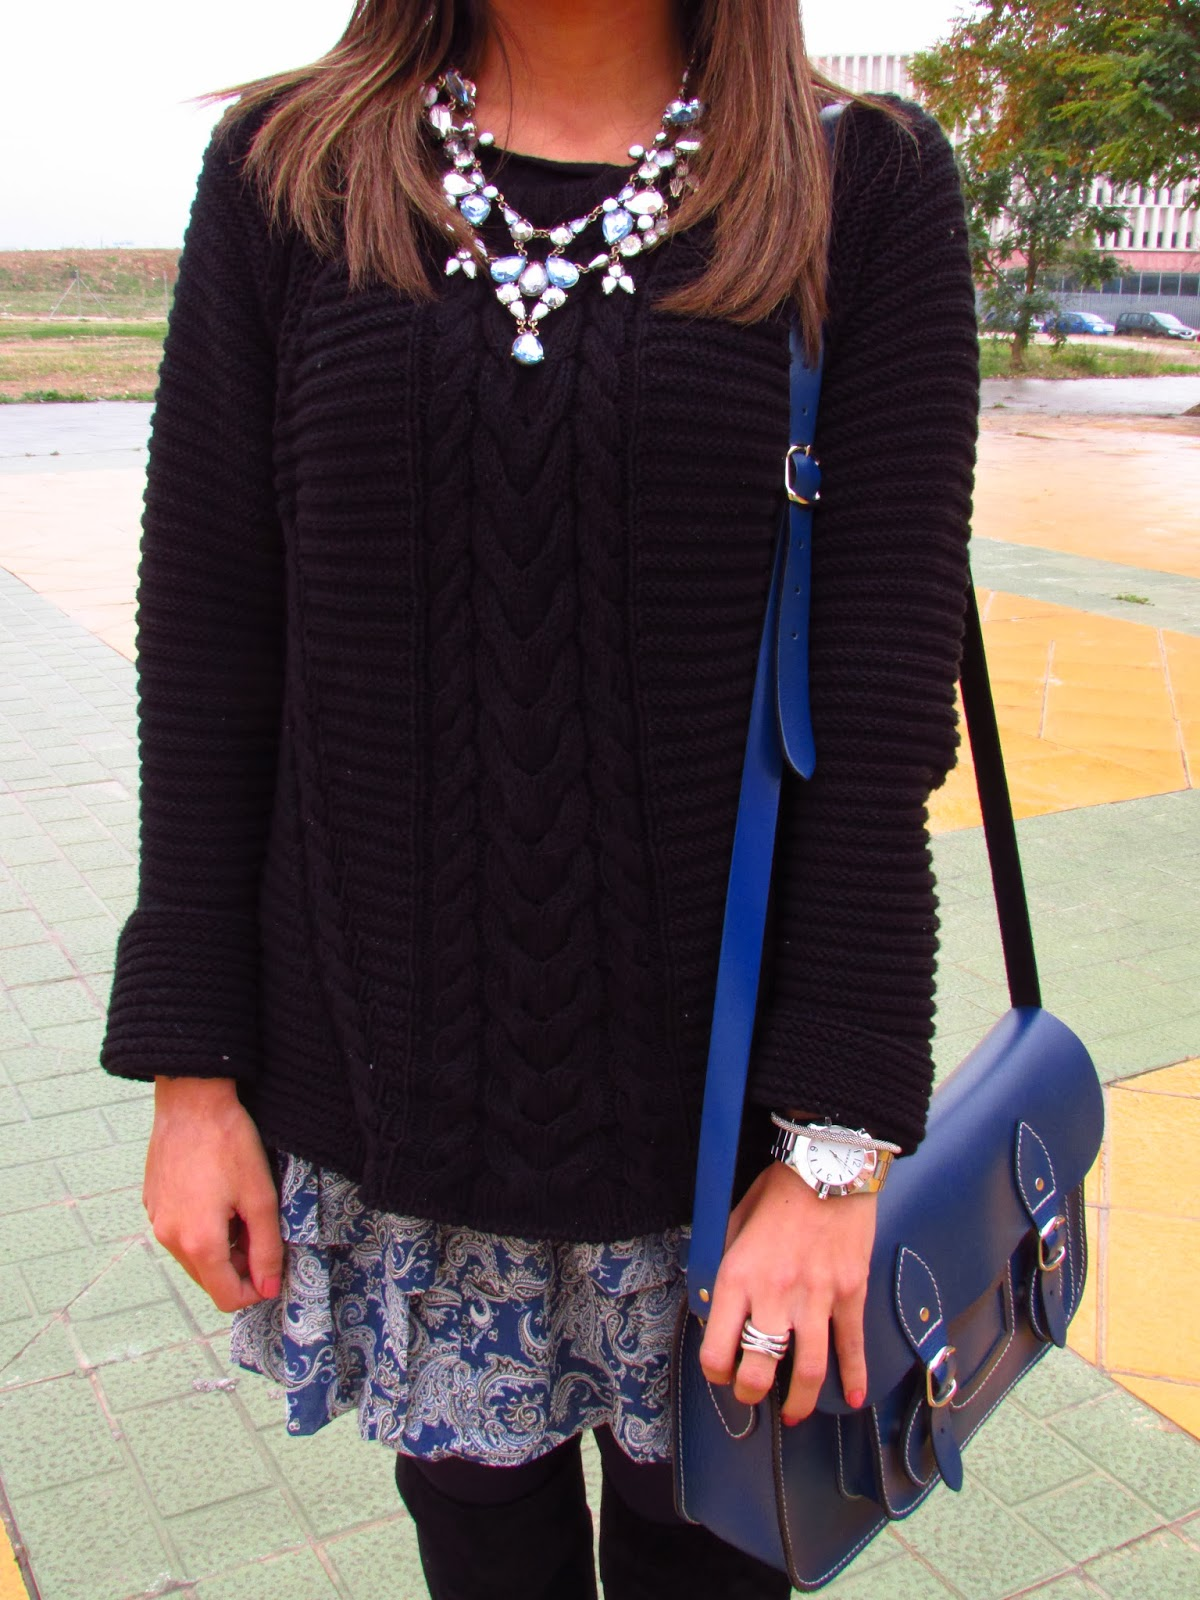 cristina style fashion blogger tendencias moda street style ootd ootw outfit look